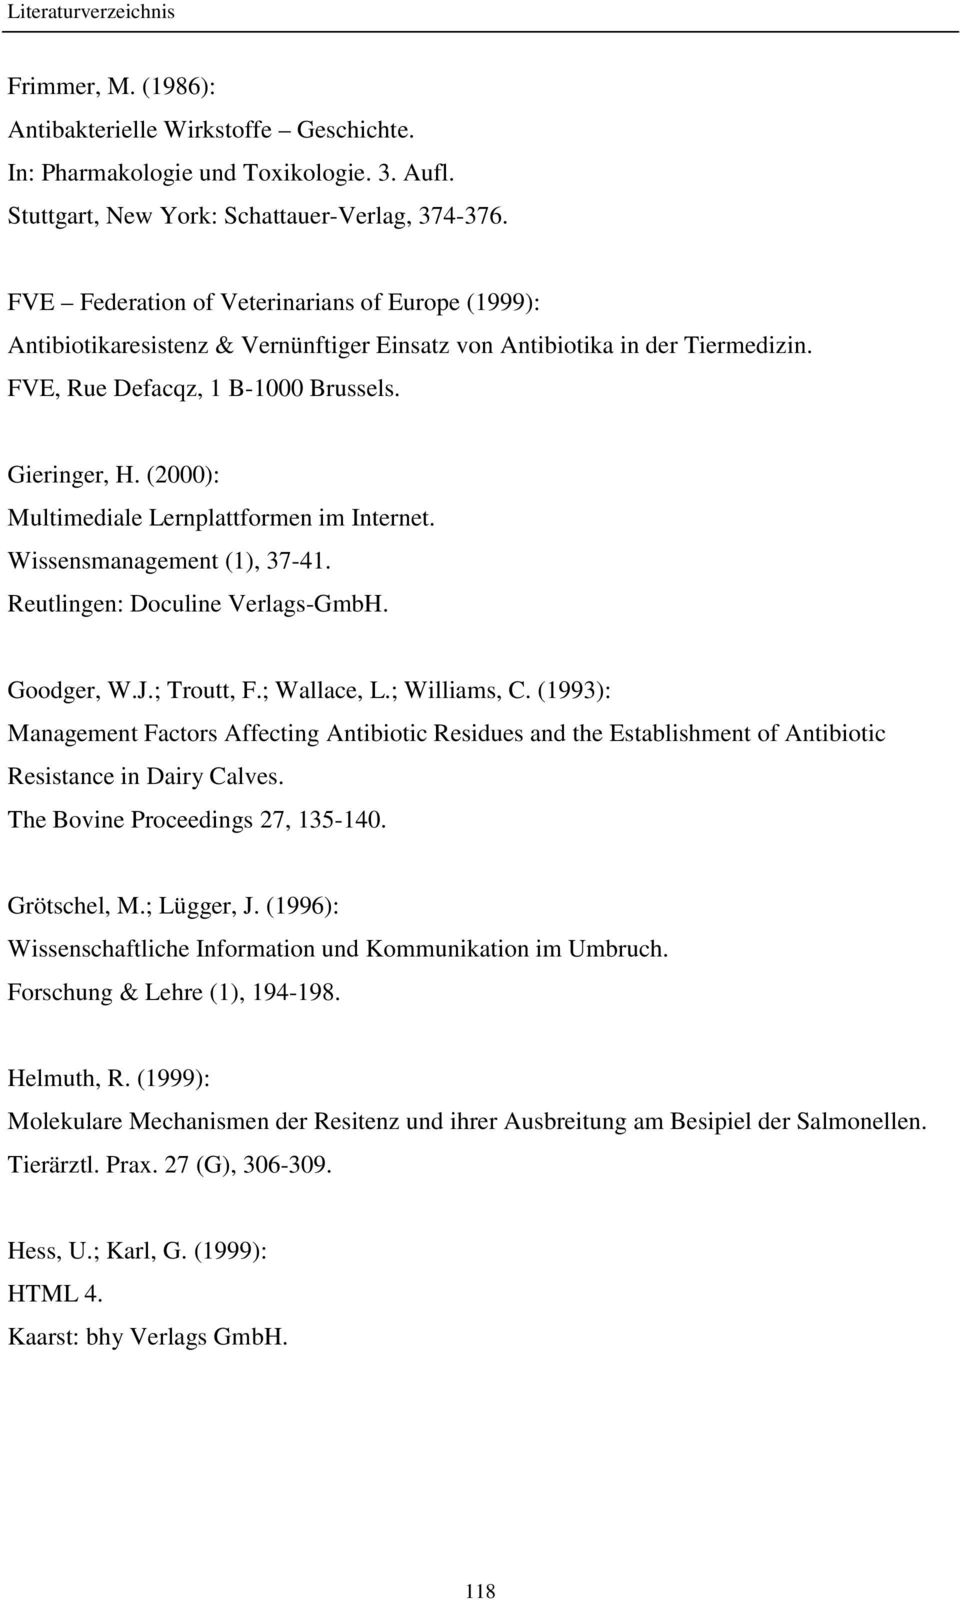 (2000): Multimediale Lernplattformen im Internet. Wissensmanagement (1), 37-41. Reutlingen: Doculine Verlags-GmbH. Goodger, W.J.; Troutt, F.; Wallace, L.; Williams, C.